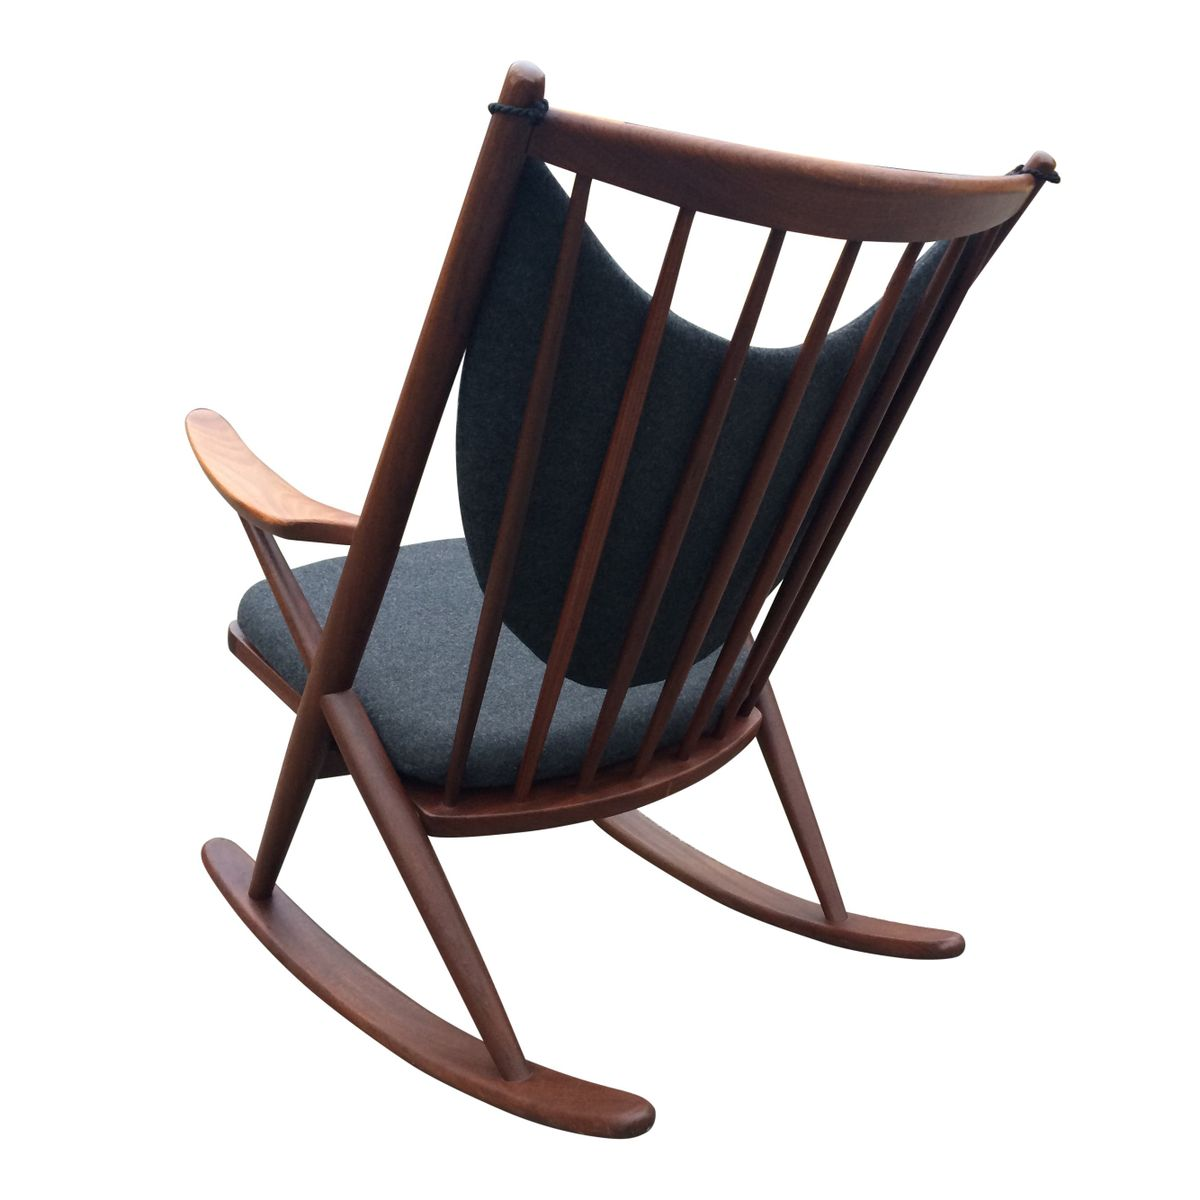 182 Rocking Chair by Frank Reenskaug for Bramin for sale